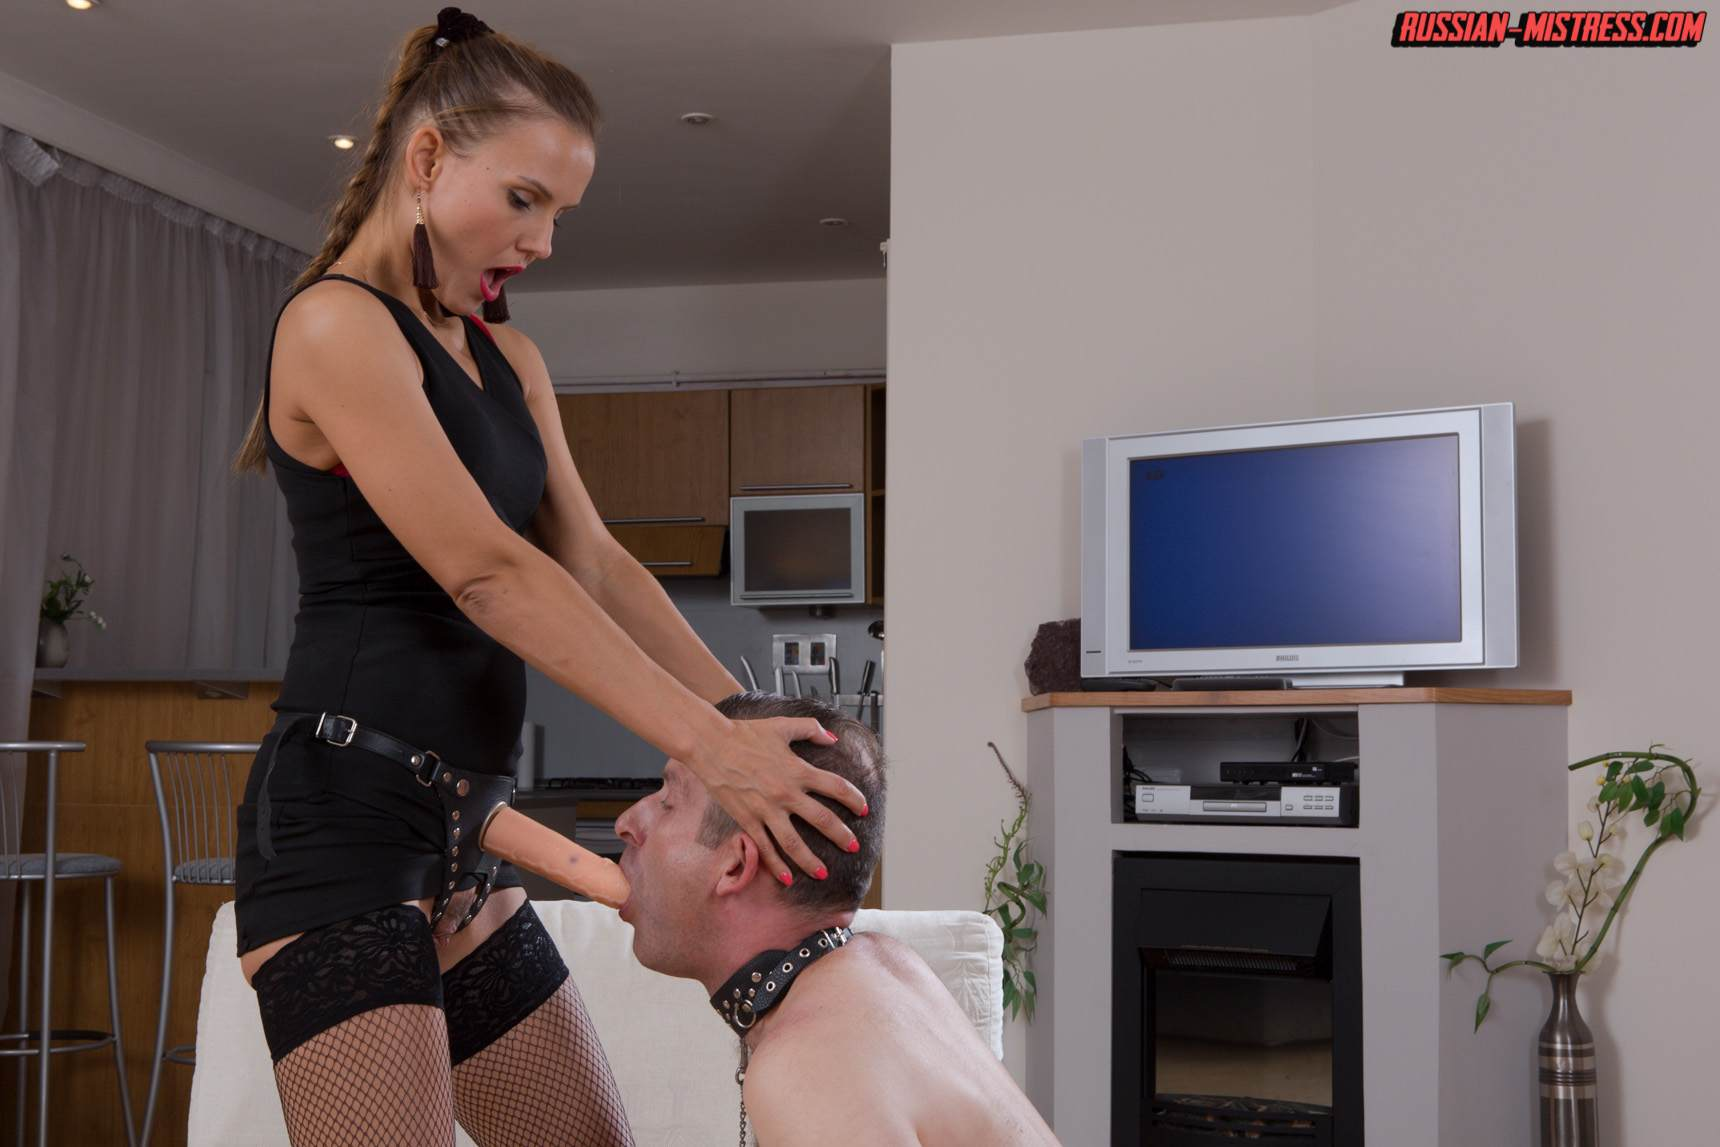 Picture #12 of Mistress is keeping slave motivated for legs worship with harsh whip lashes and then rewards him with deep anal strap-on penetration